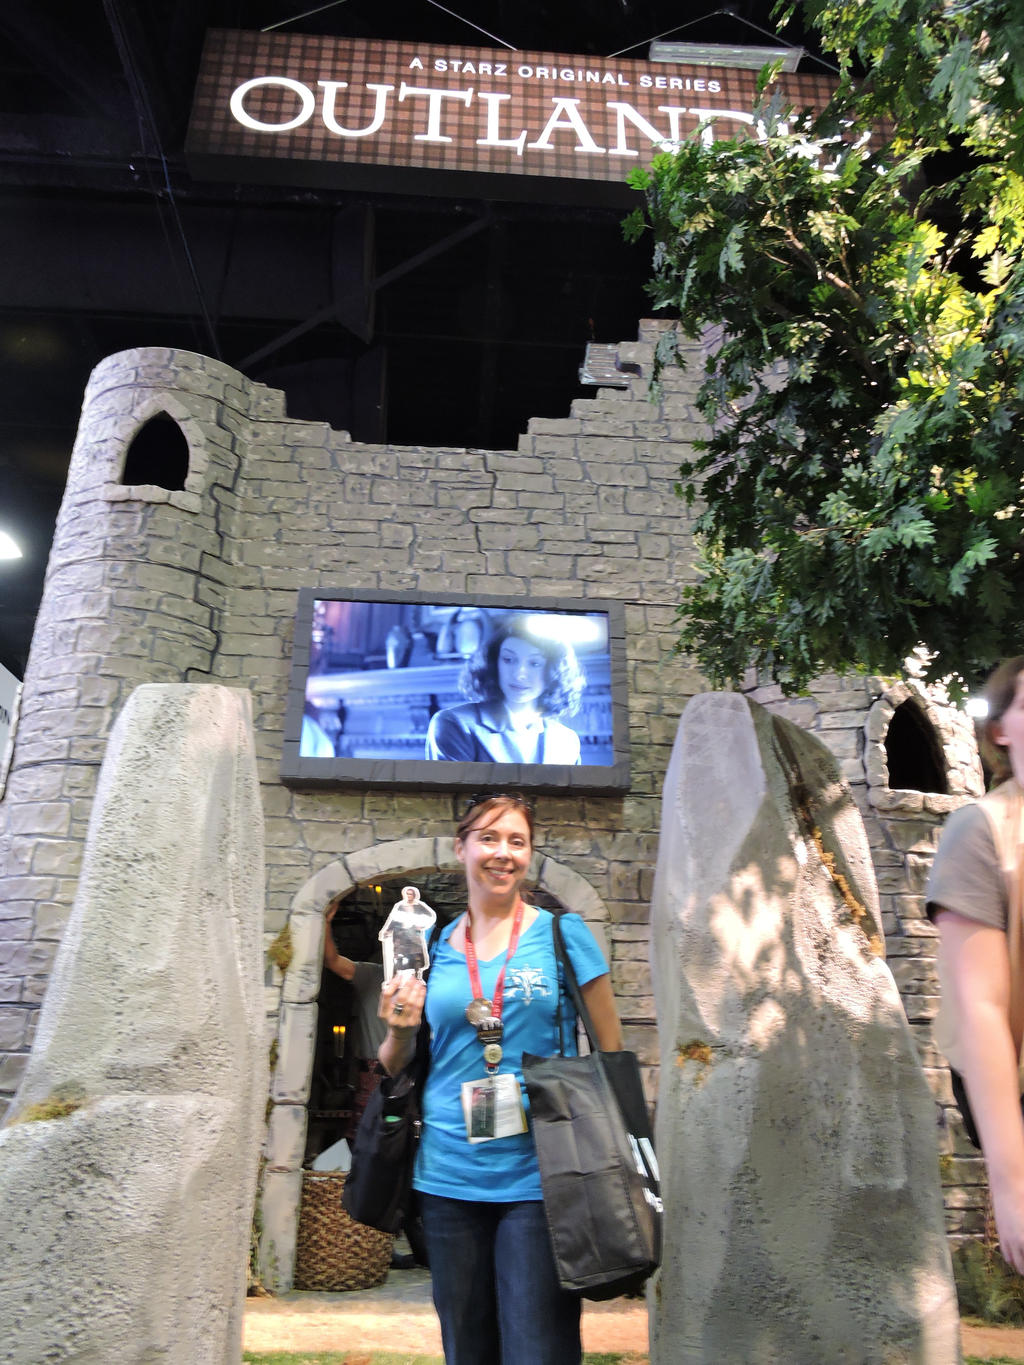 Outlander Booth SDCC by IreneAdler76